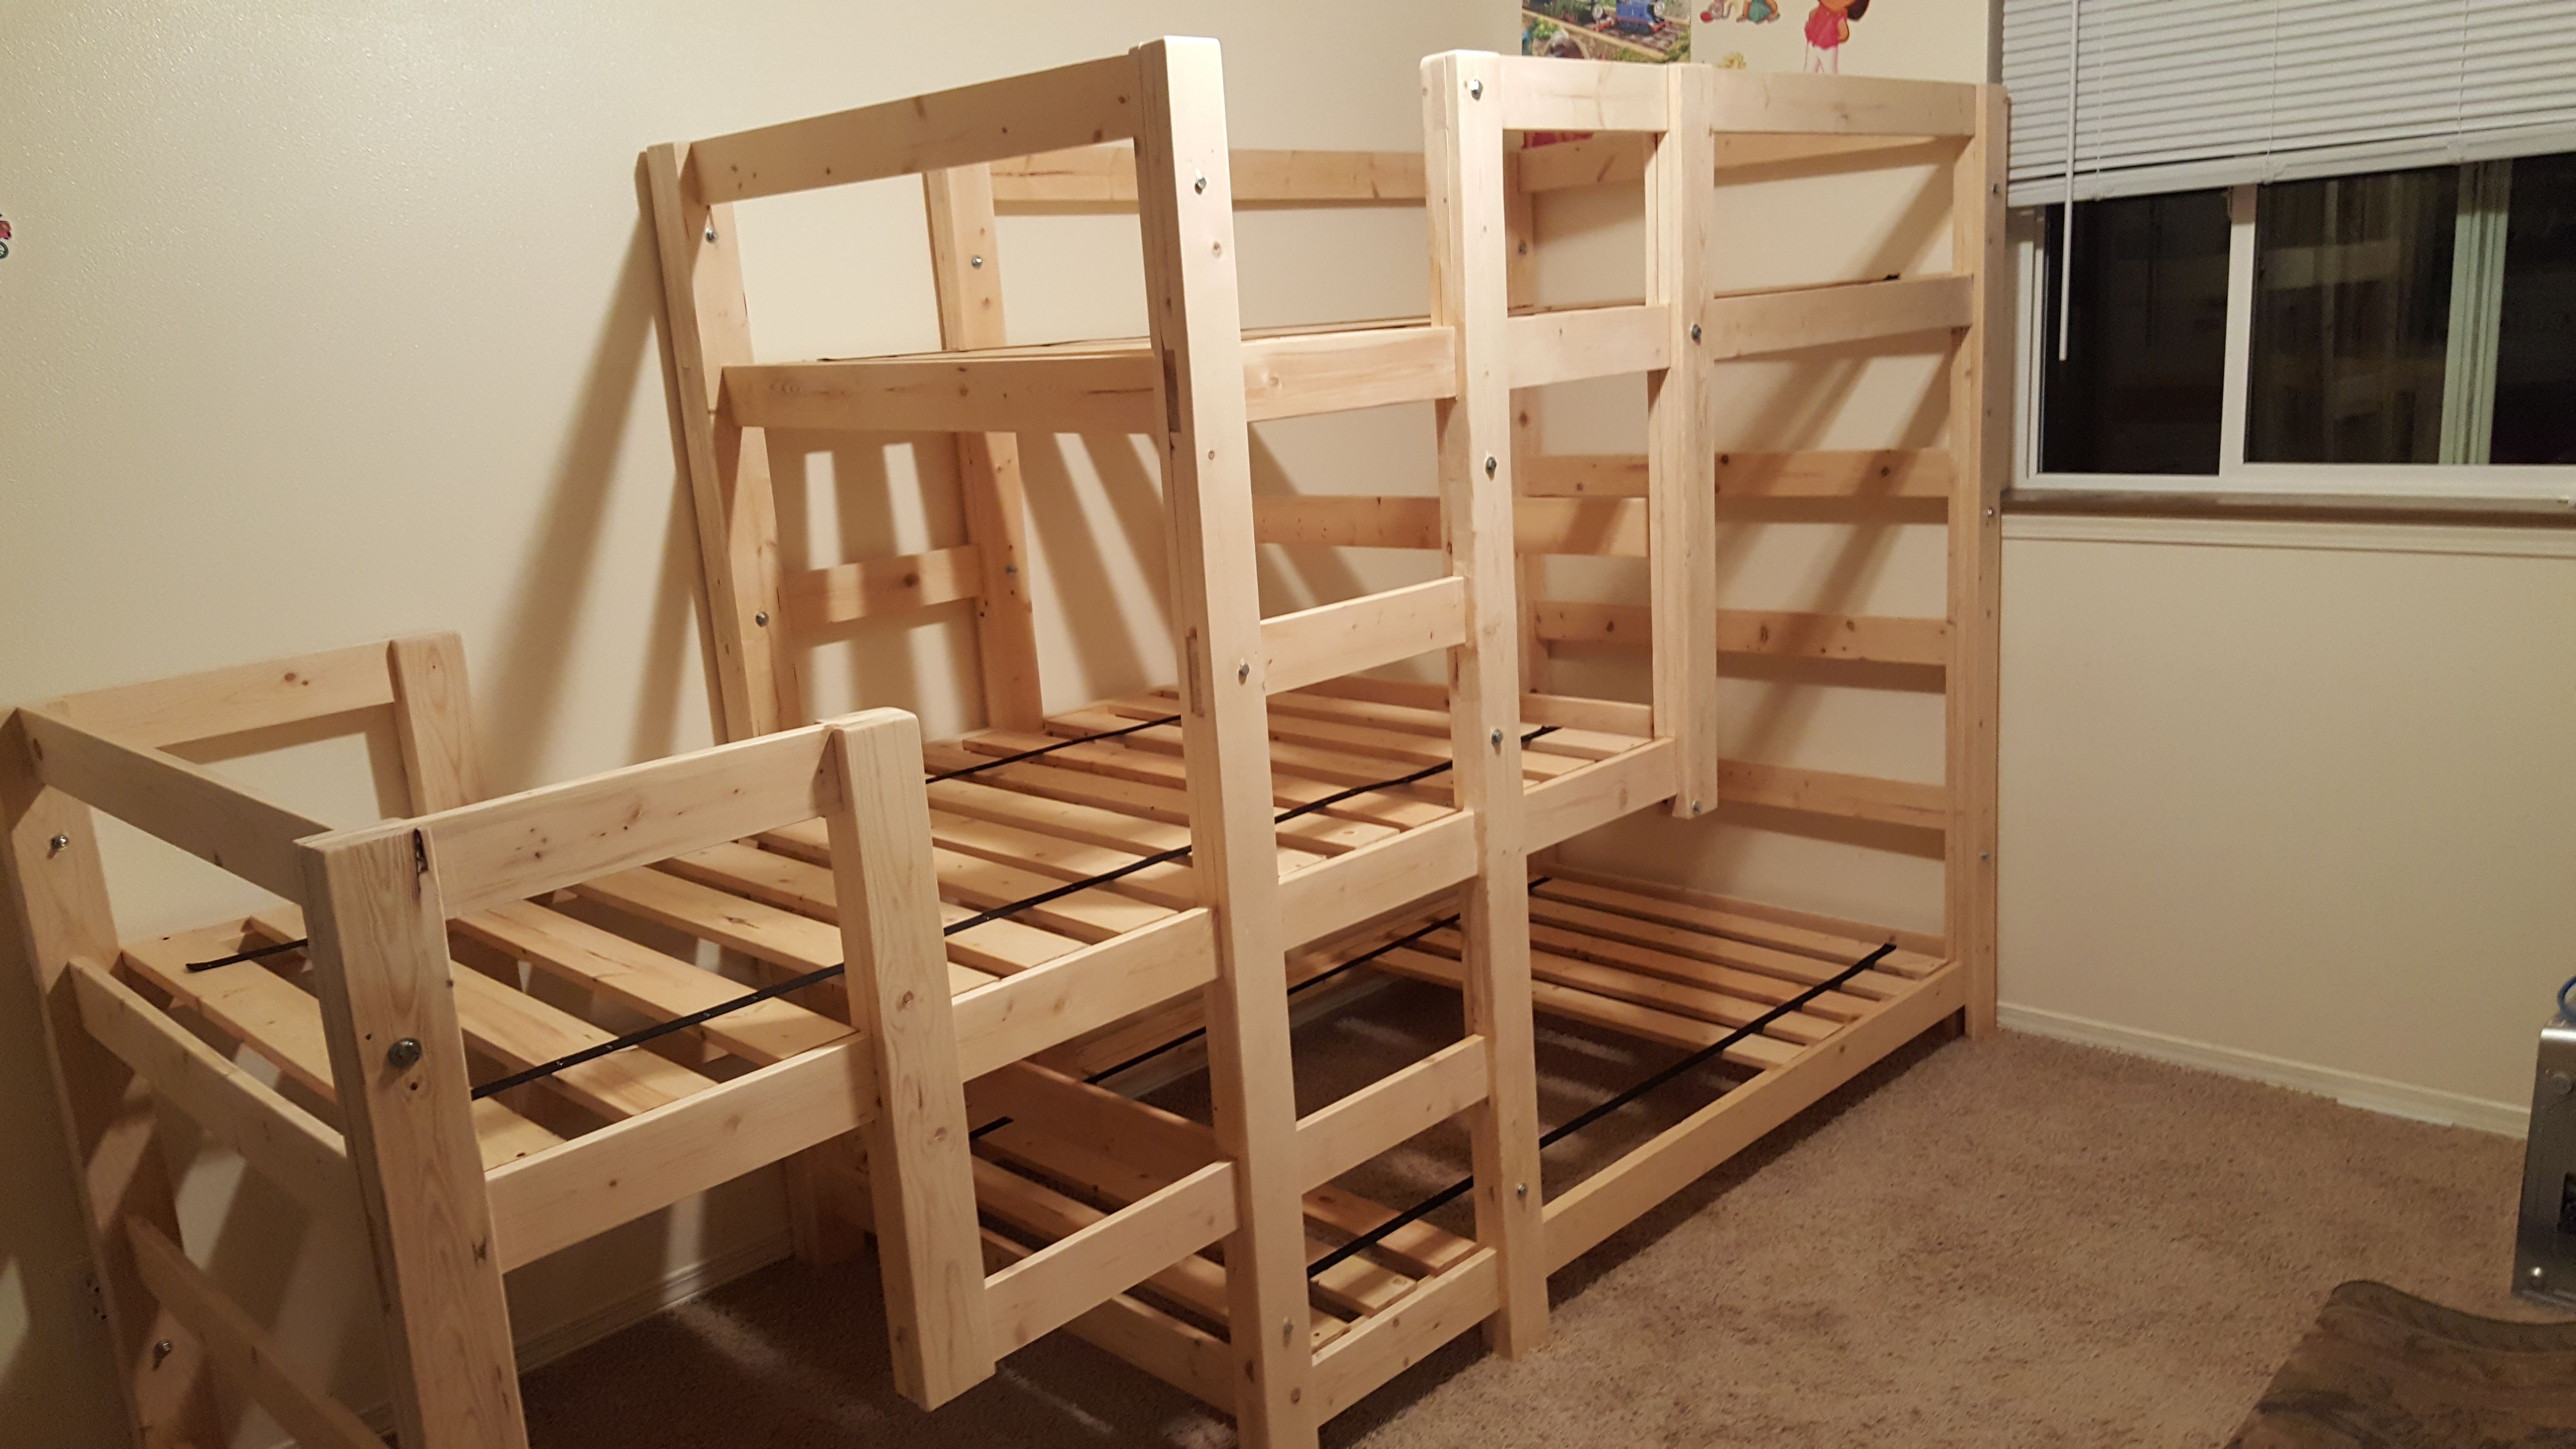 Loft bed ideas diy  Conserving Space And Staying Trendy With Triple Bunk Beds  Our new